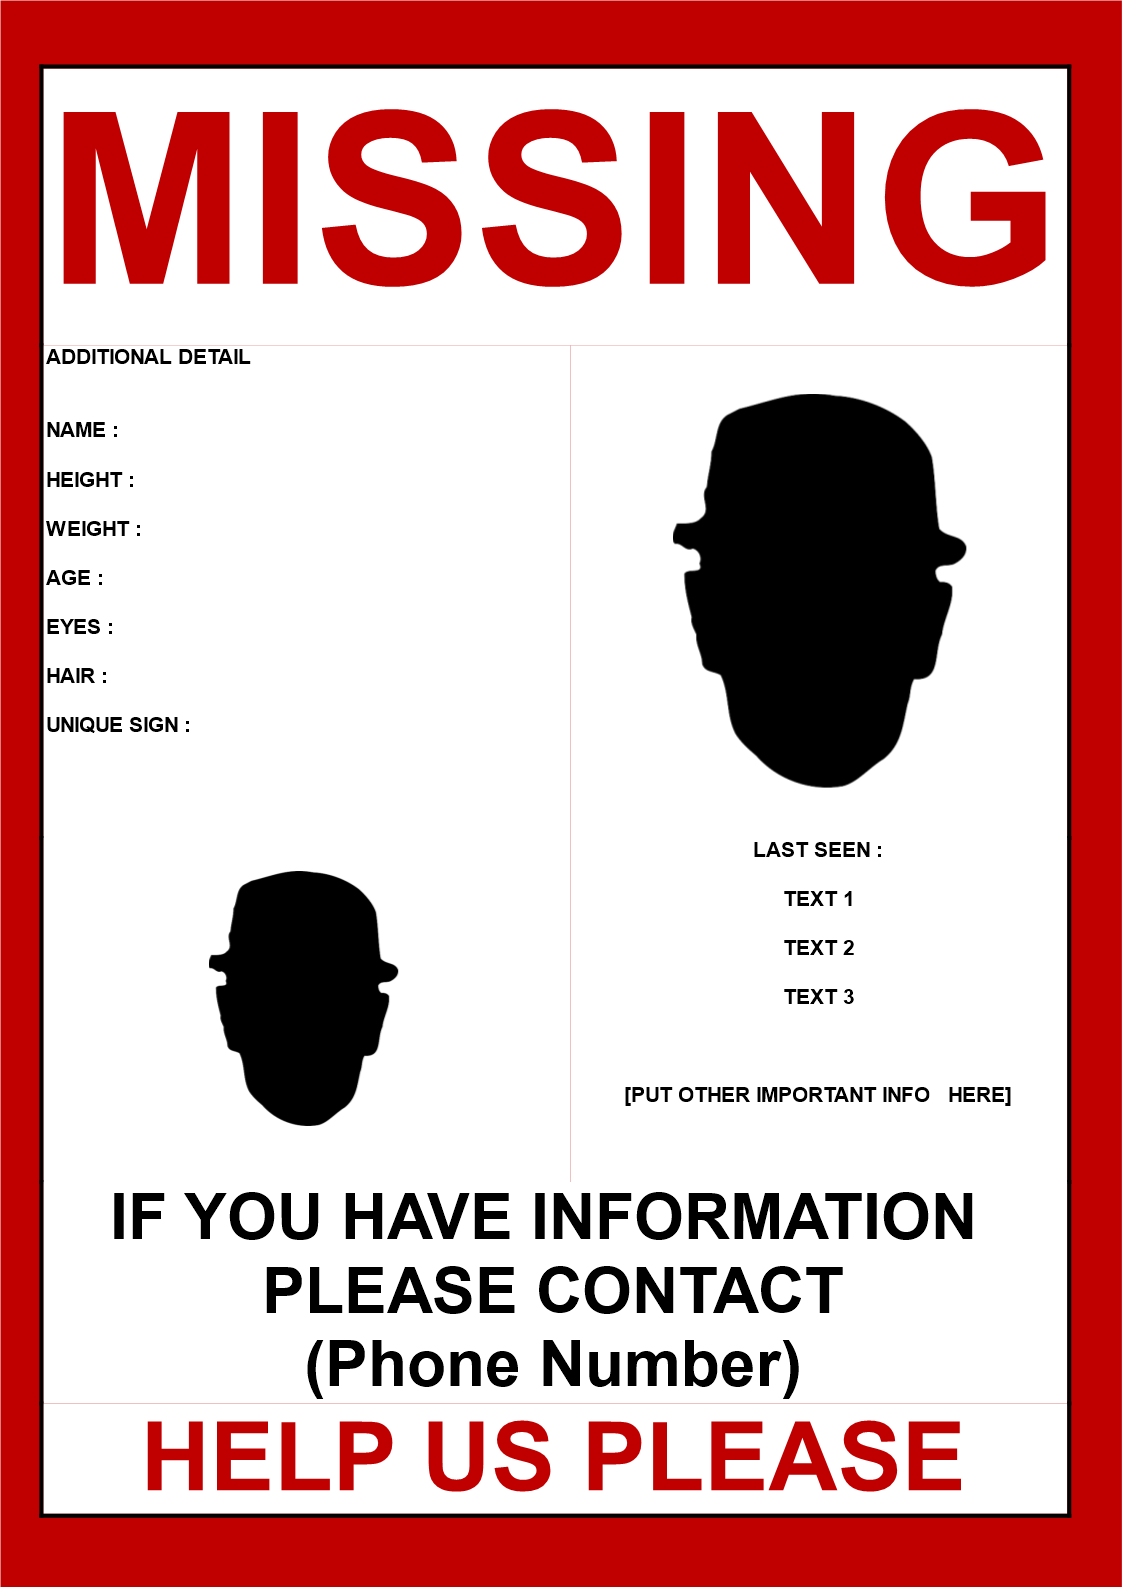 Missing person poster template 2 images missing person poster 2 missing person poster template 2 images missing person poster 2 pictures template pronofoot35fo Images